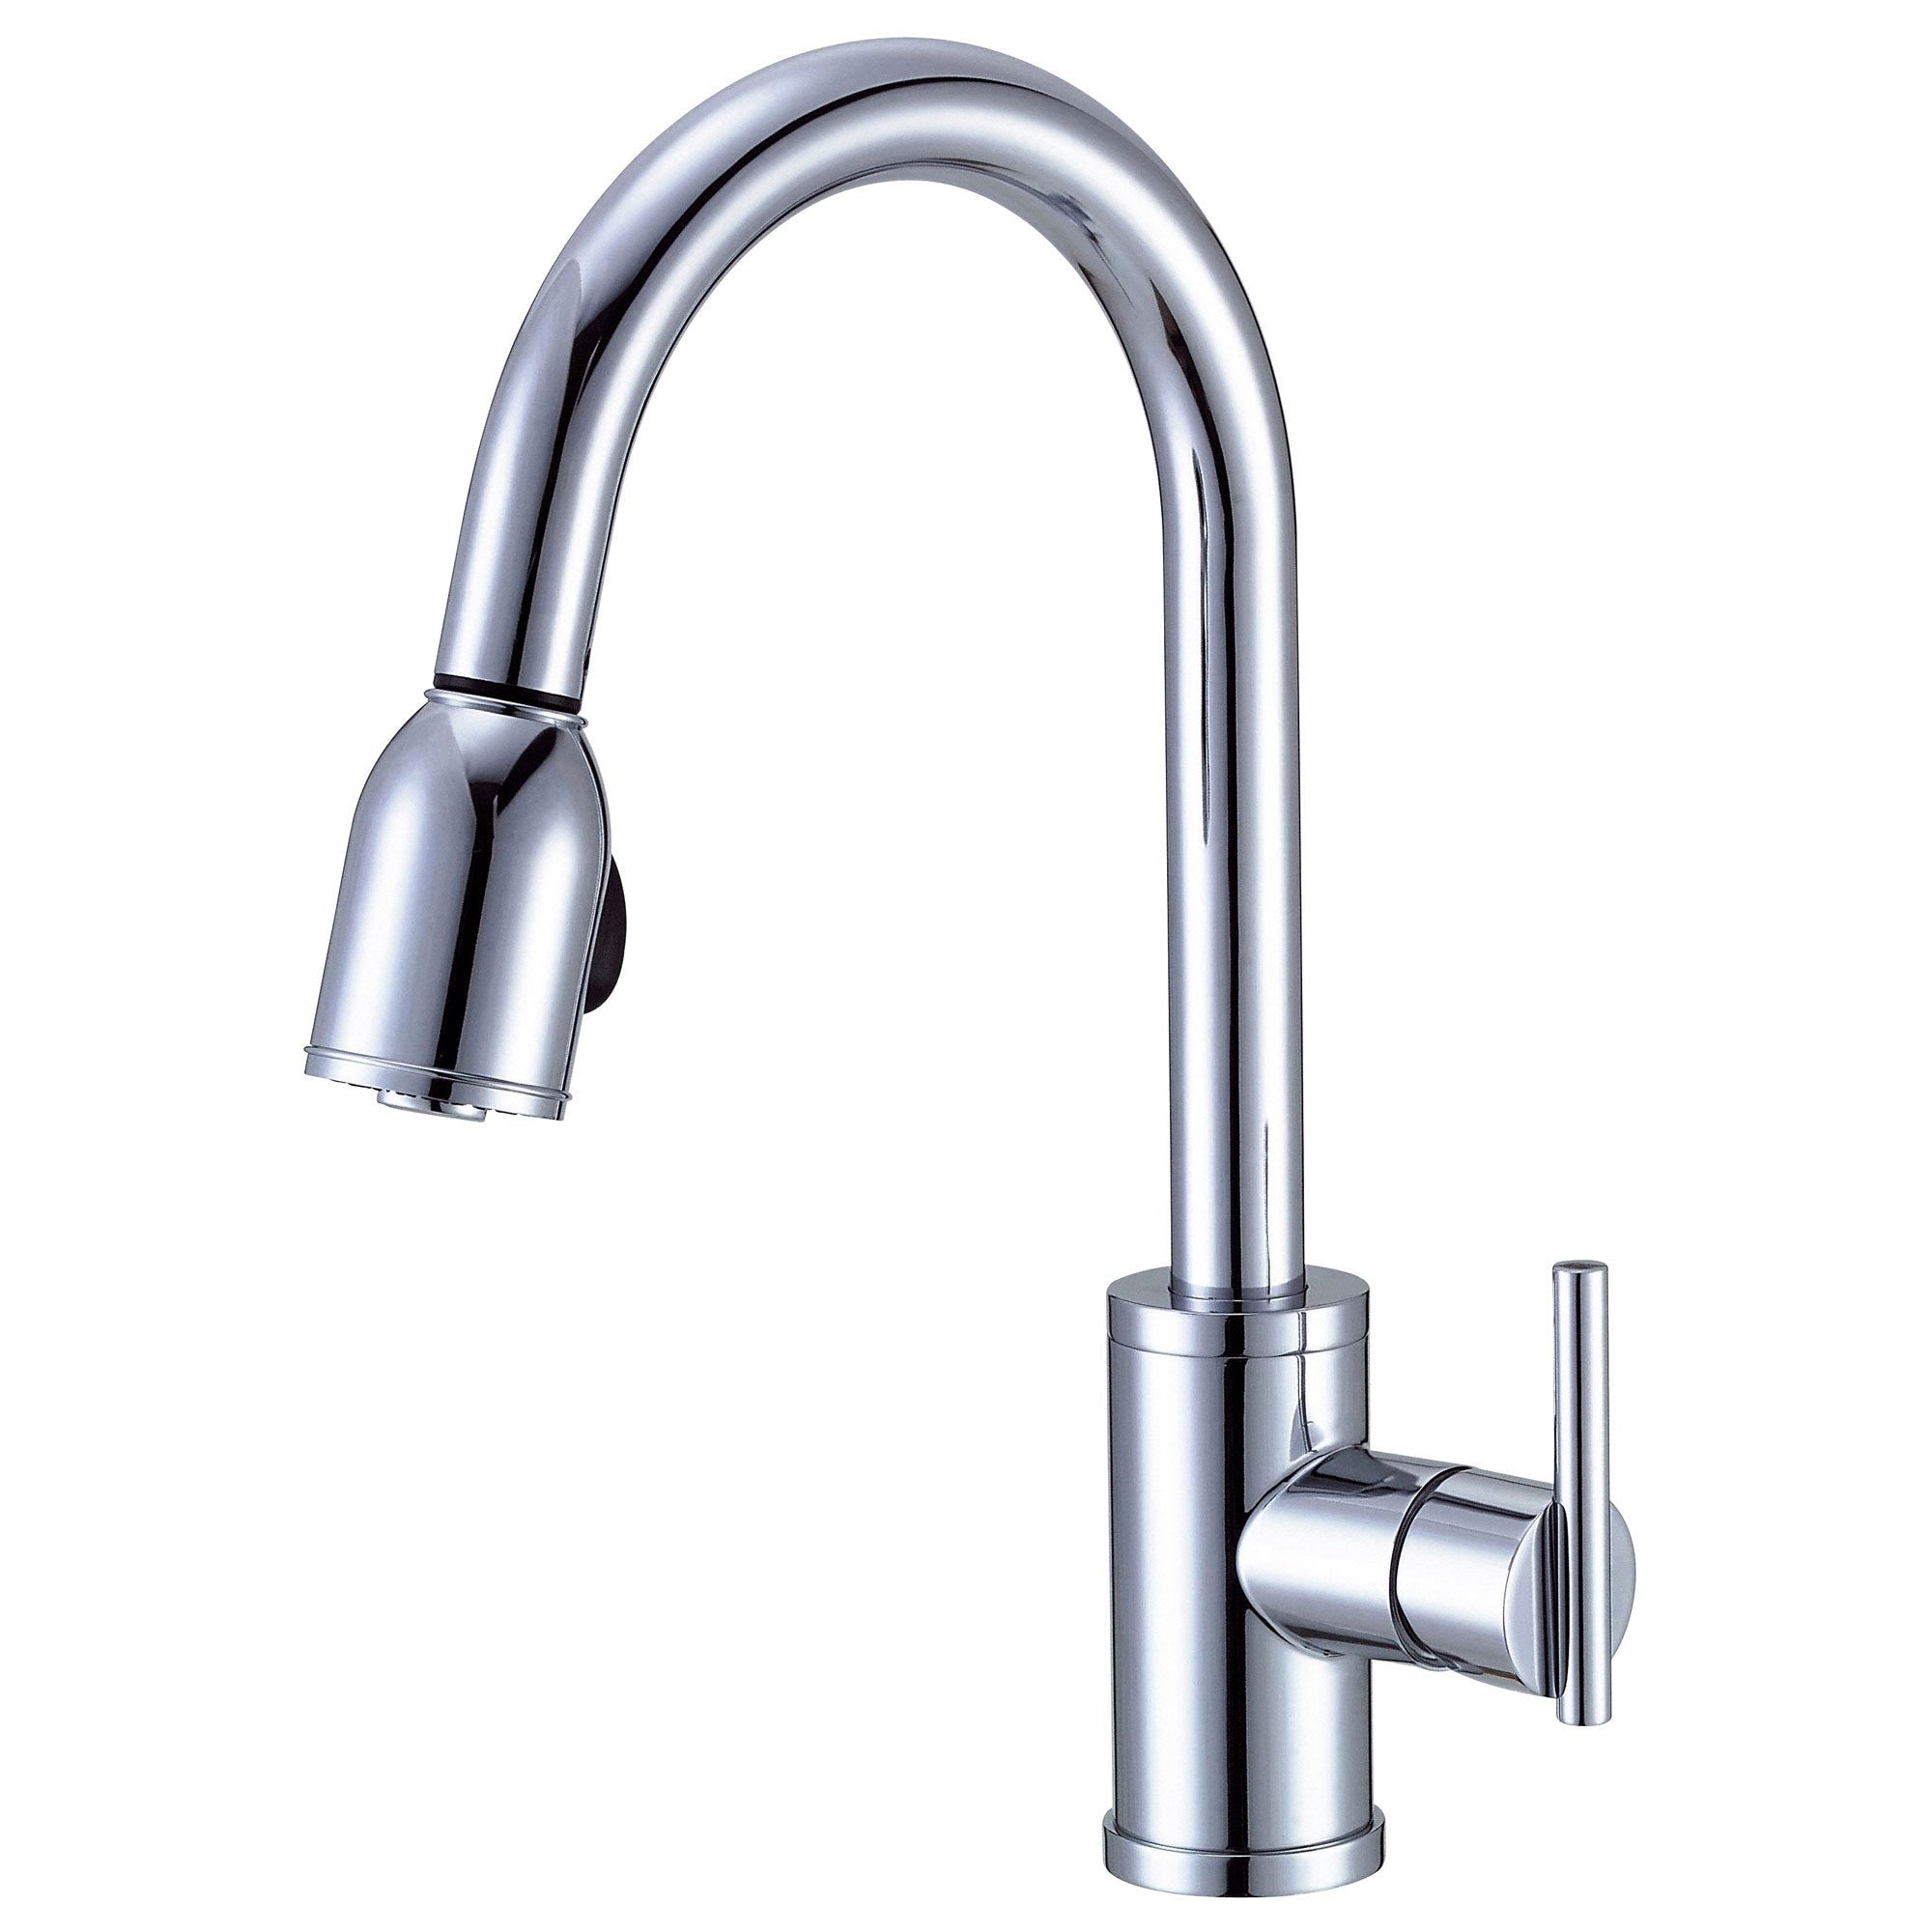 Danze Parma Chrome Modern Minimal Single Handle Pull-Down Spray Kitchen Faucet